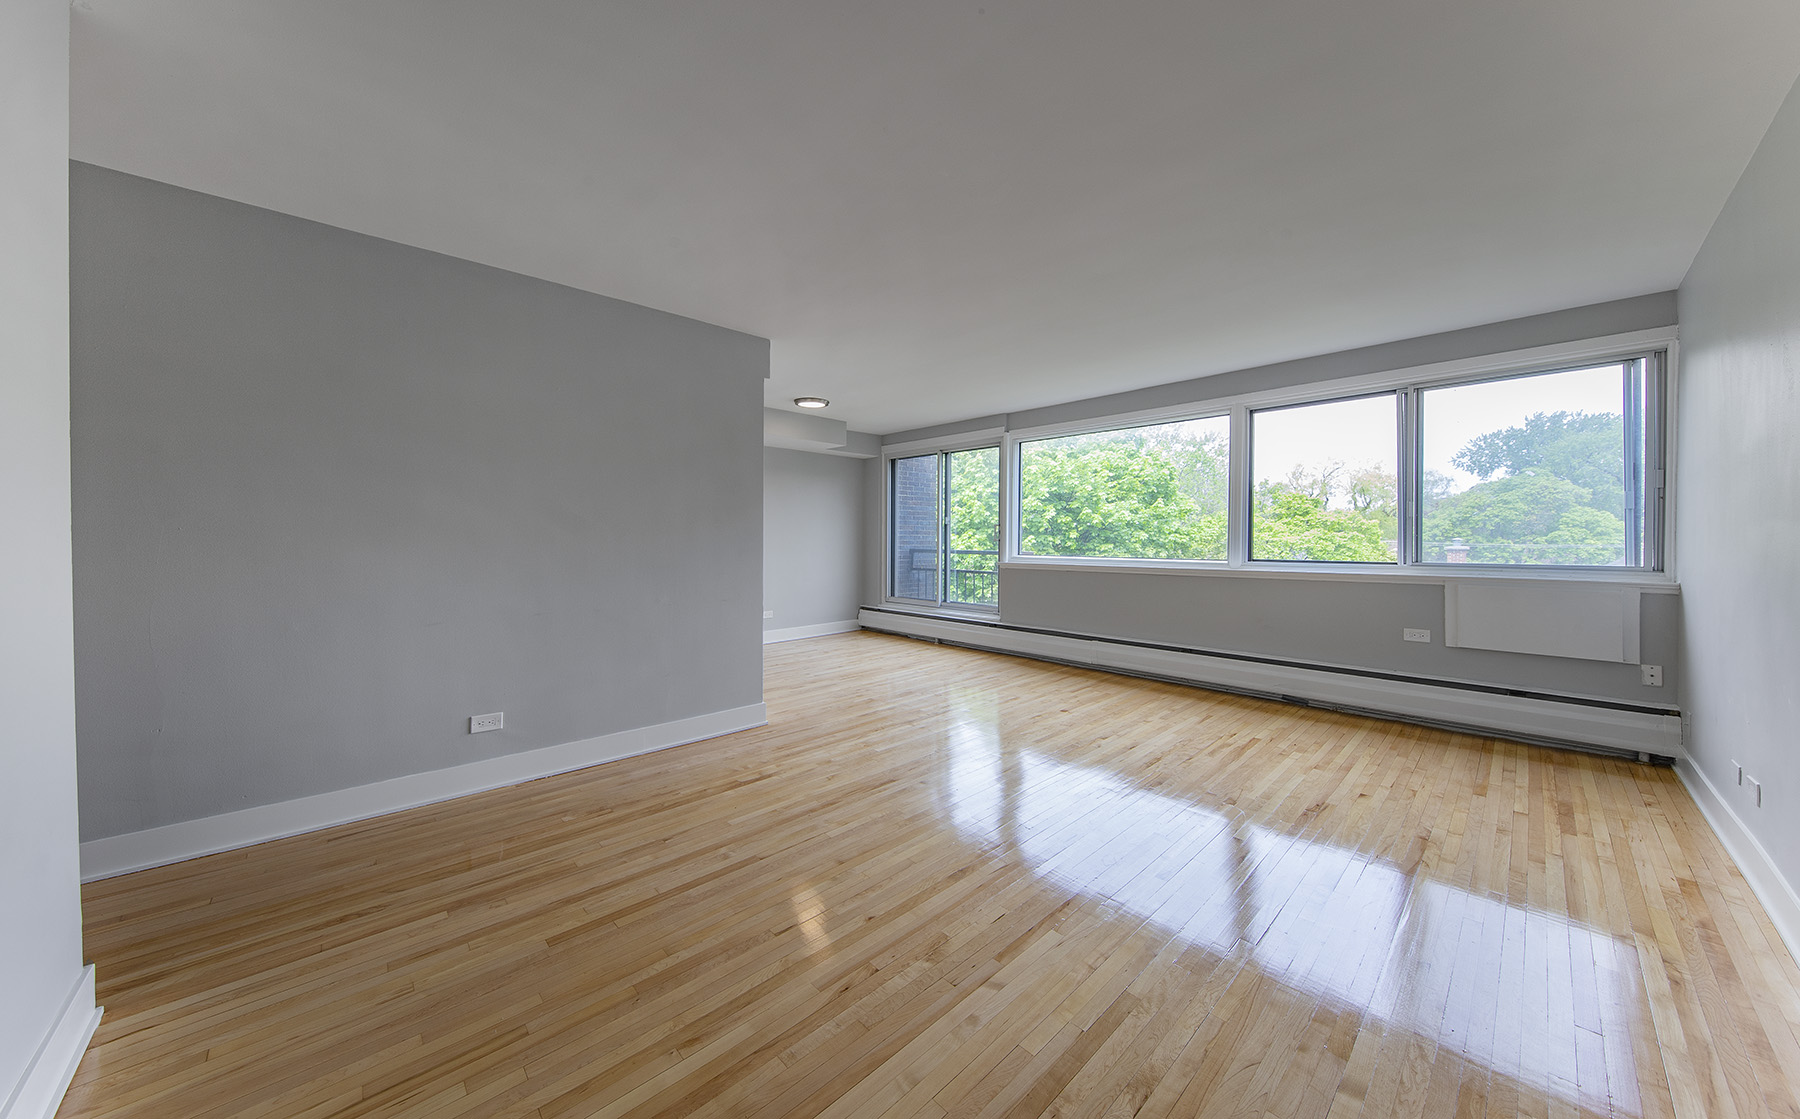 1 bedroom Apartments for rent in Cote-St-Luc at 5765 Cote St-Luc - Photo 01 - RentQuebecApartments – L401532